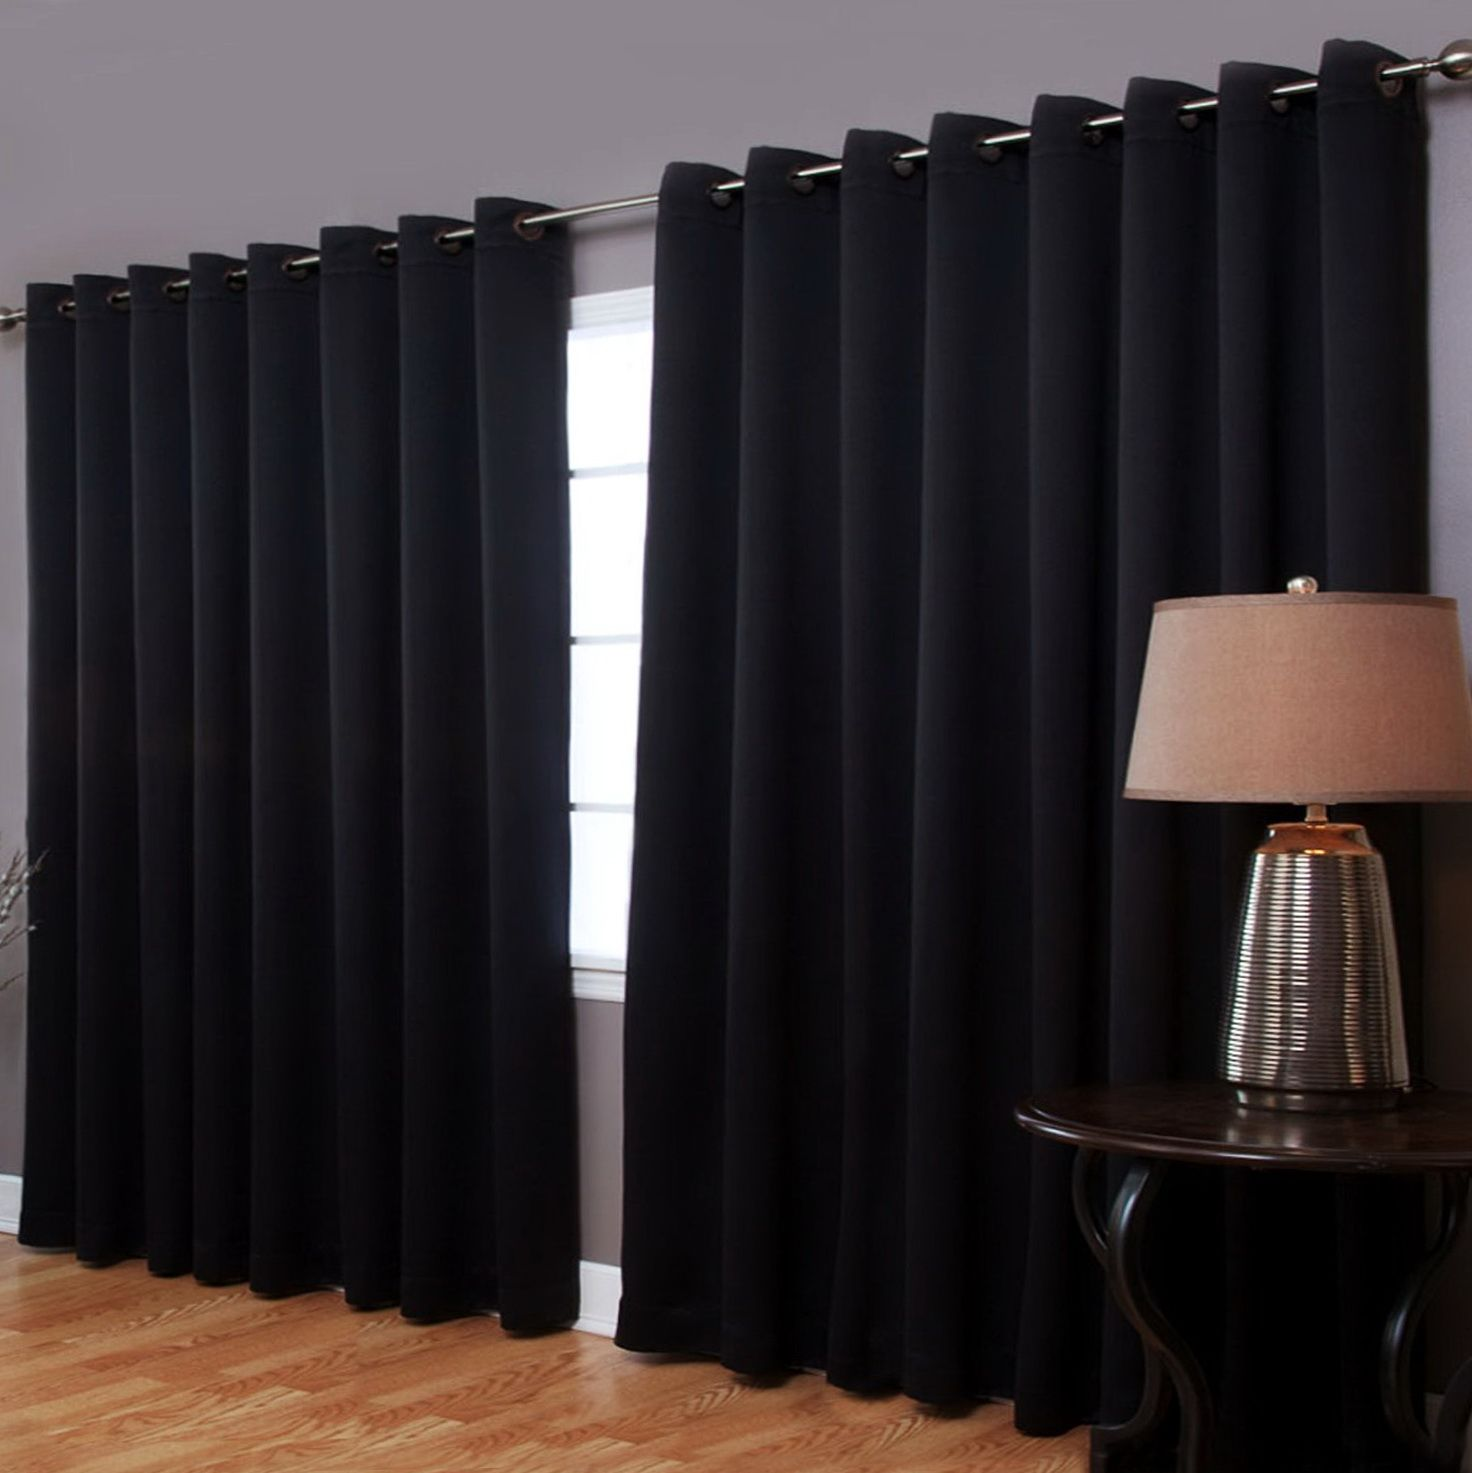 Painting Of Extra Wide Blackout Curtains Blackout Curtains Curtains Extra Wide Curtains